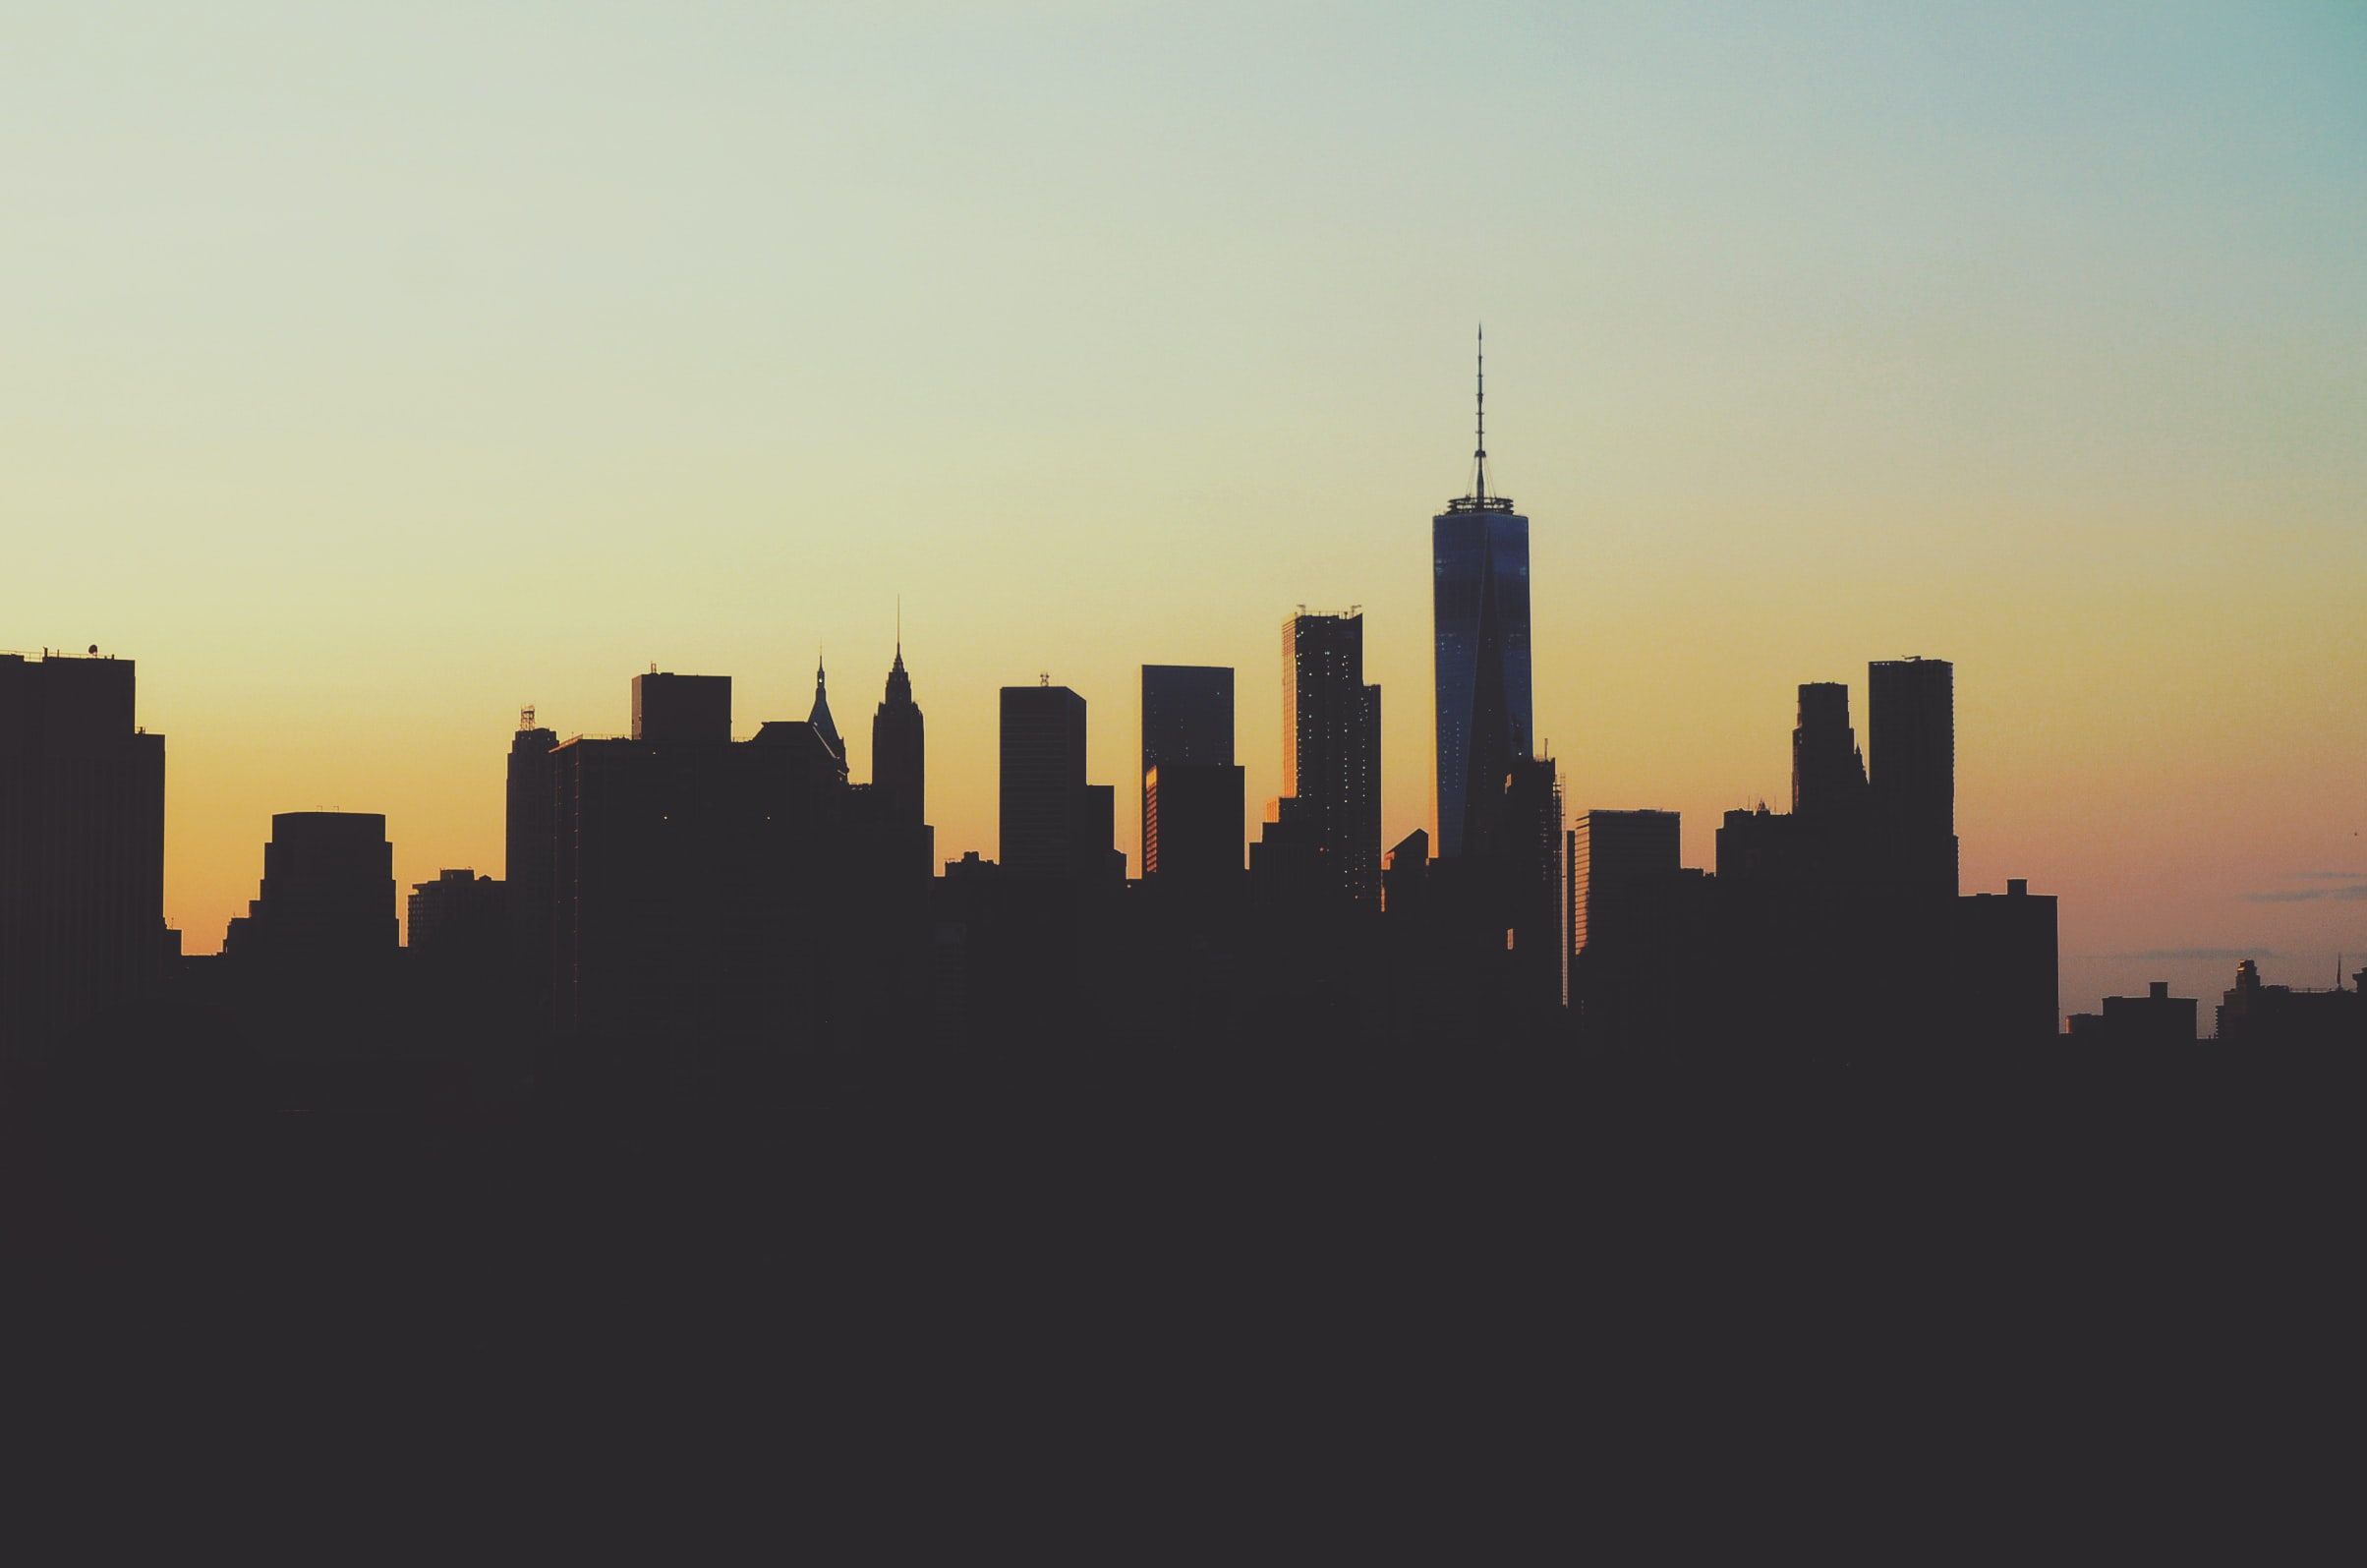 silhouette photography of high-rise buildings